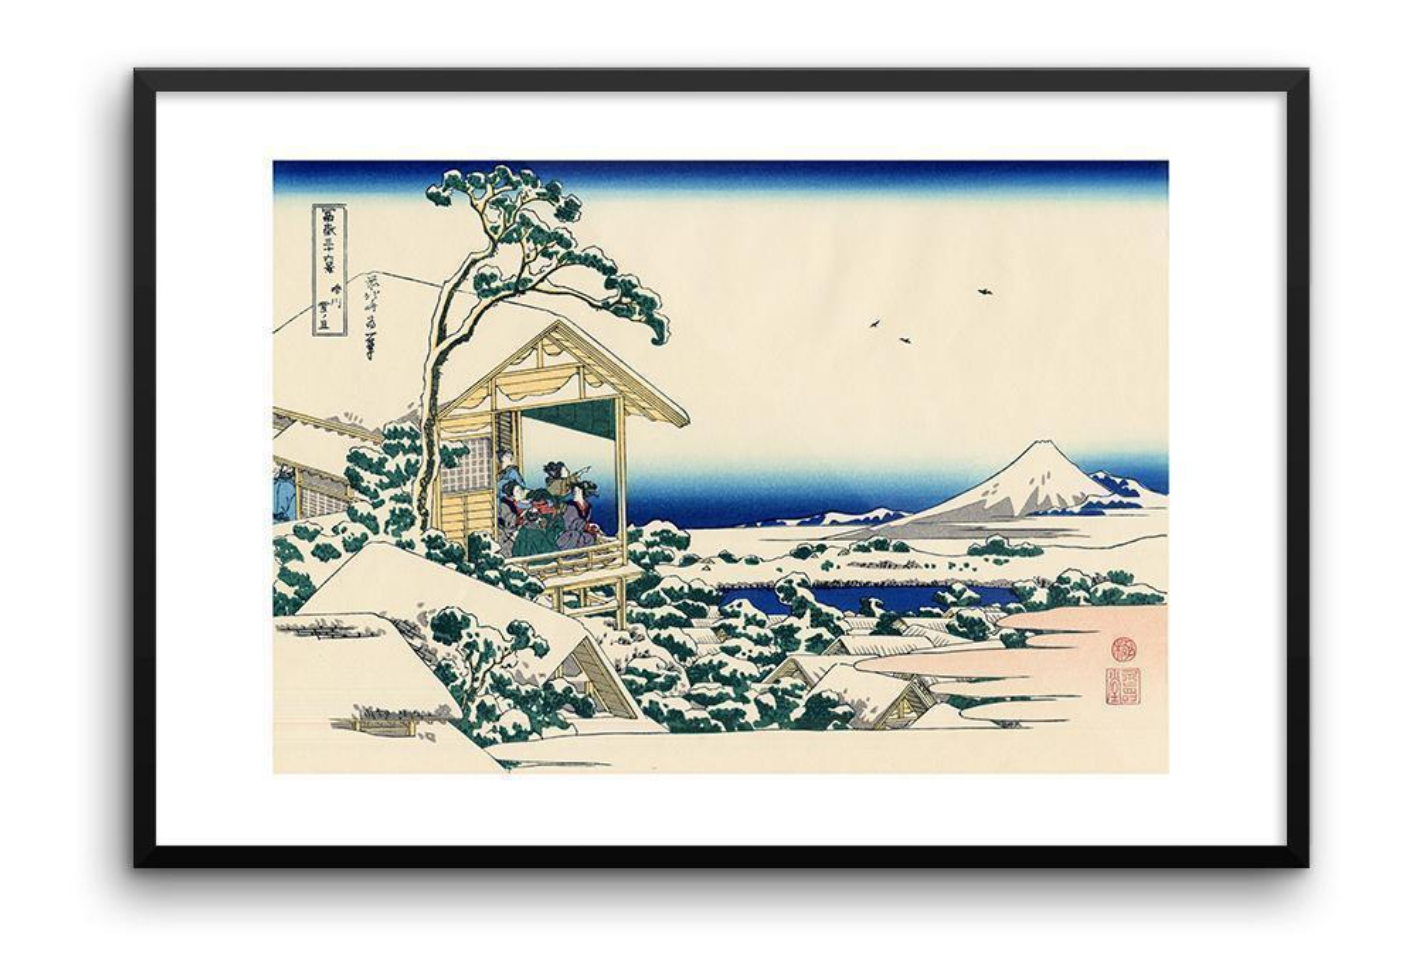 Tea House at Koishikawa by Hokusai